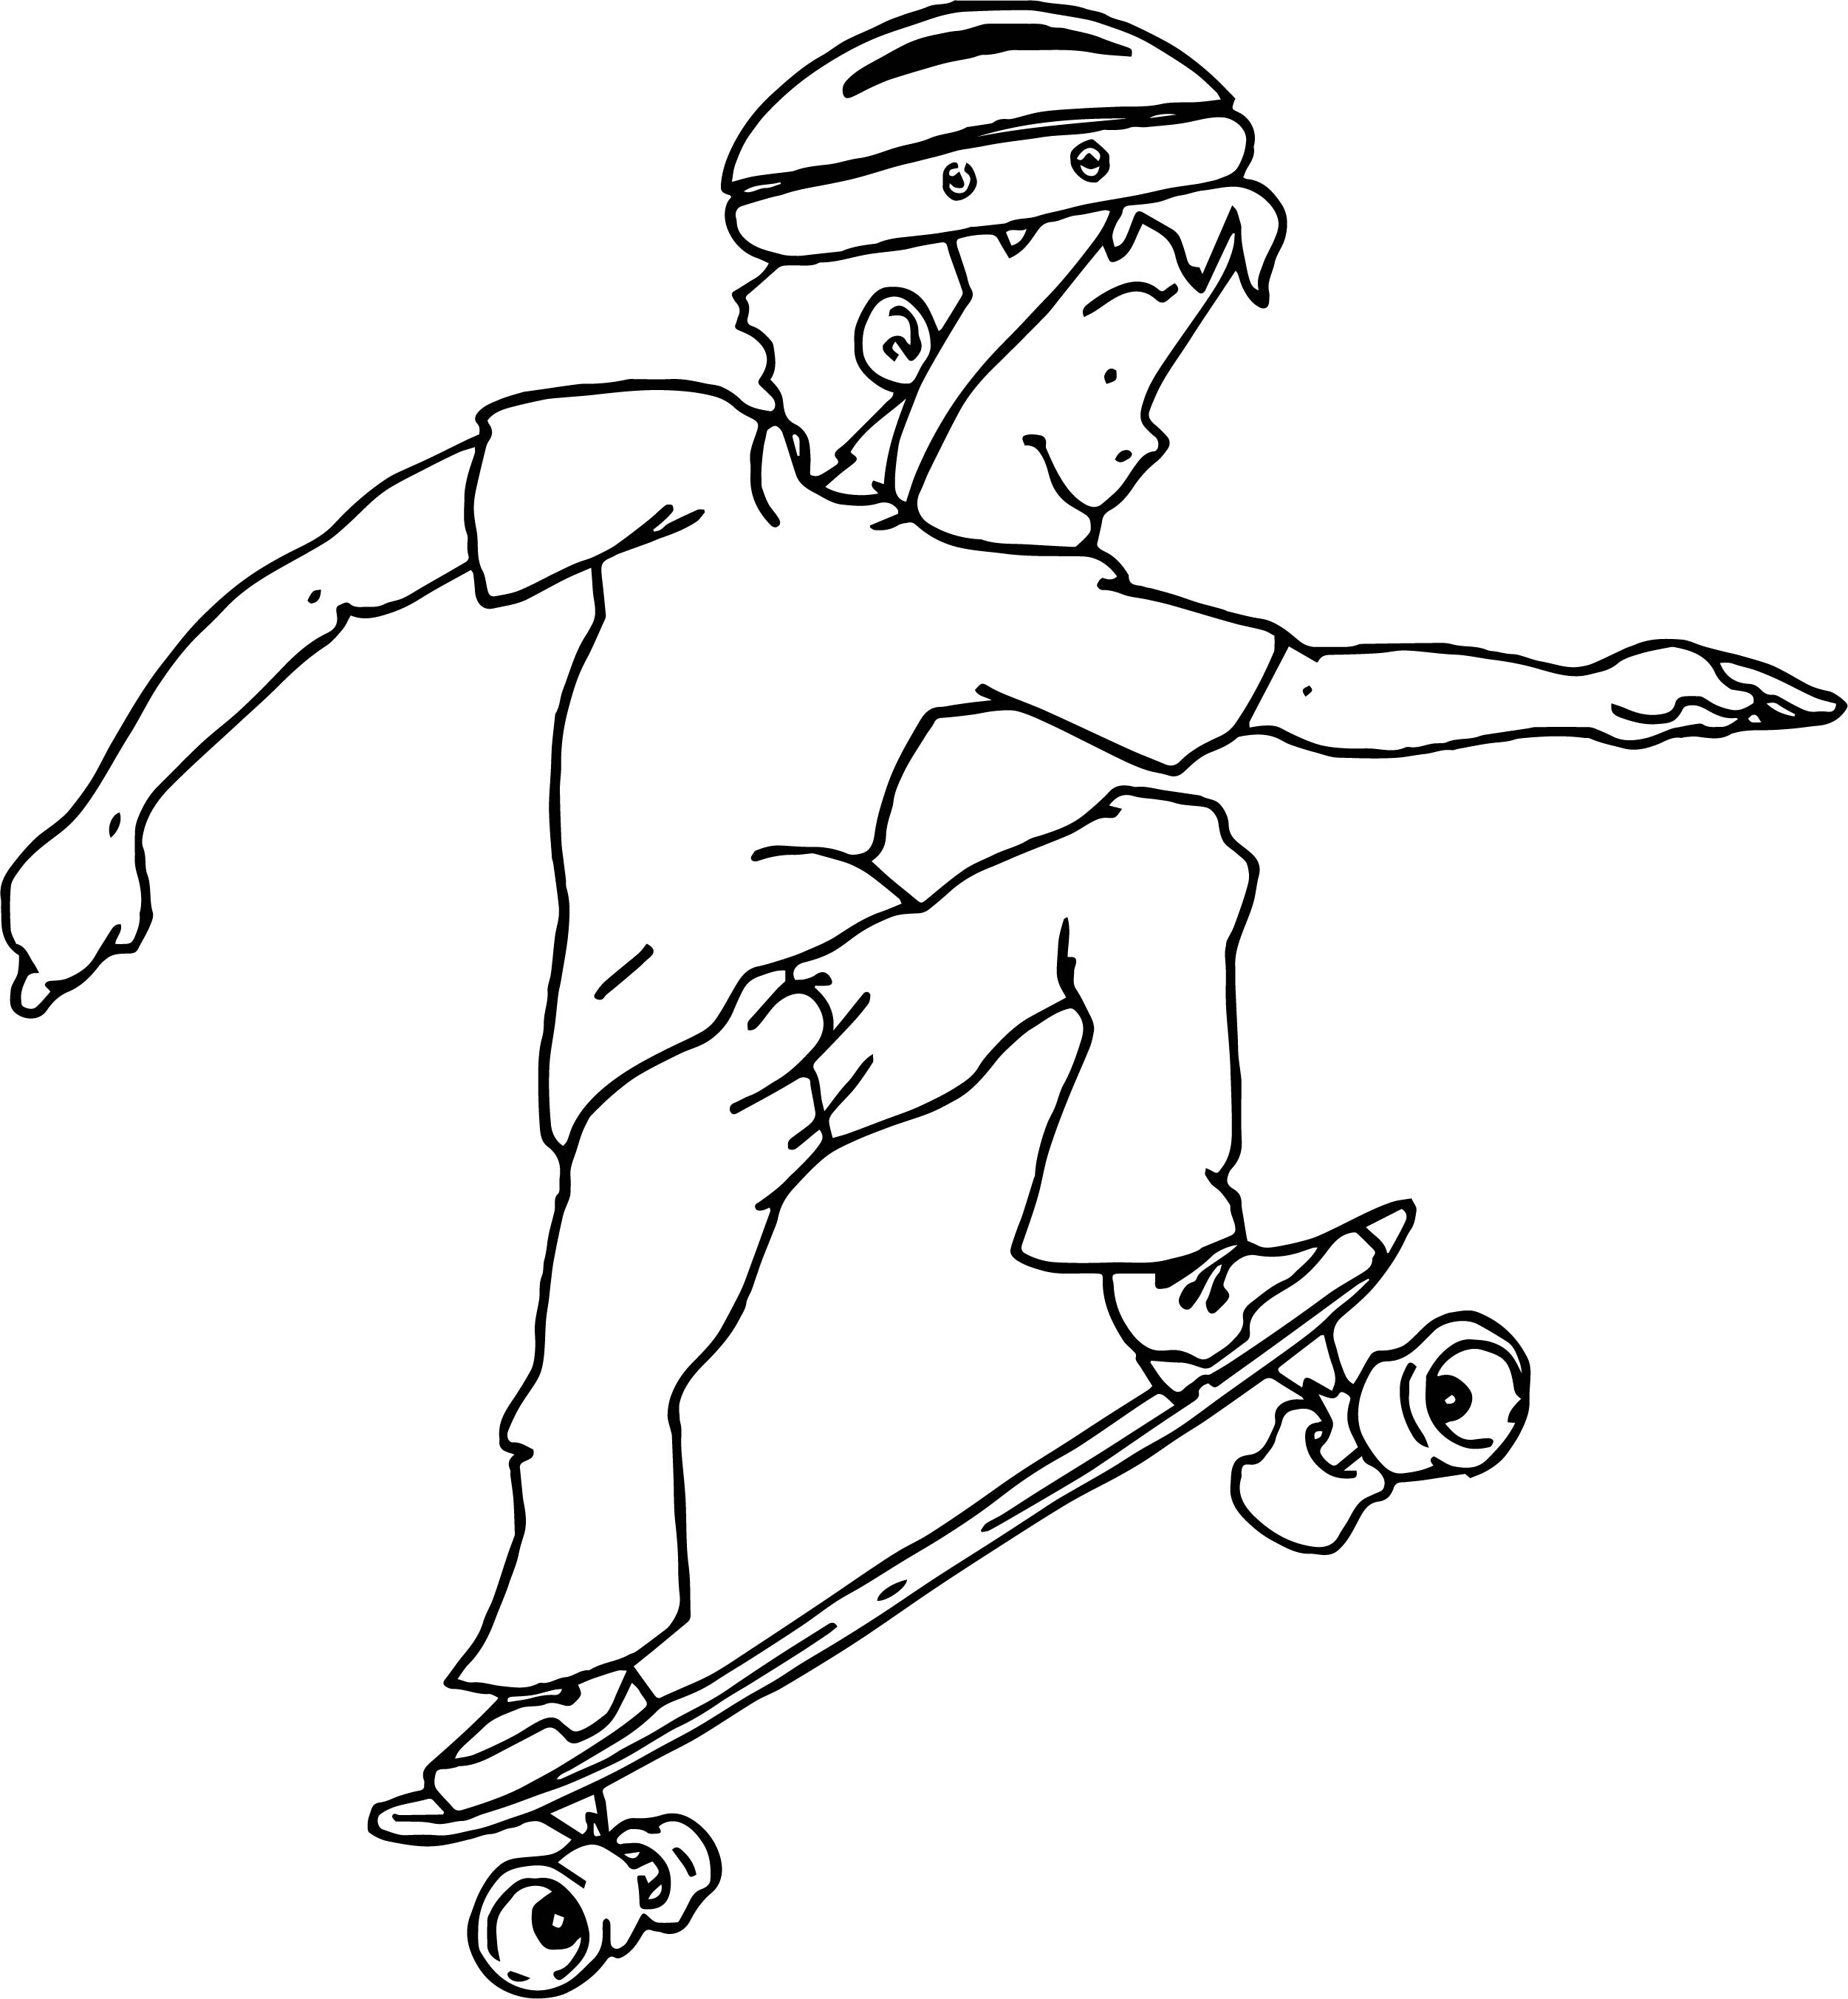 Good Skater Boy Coloring Page